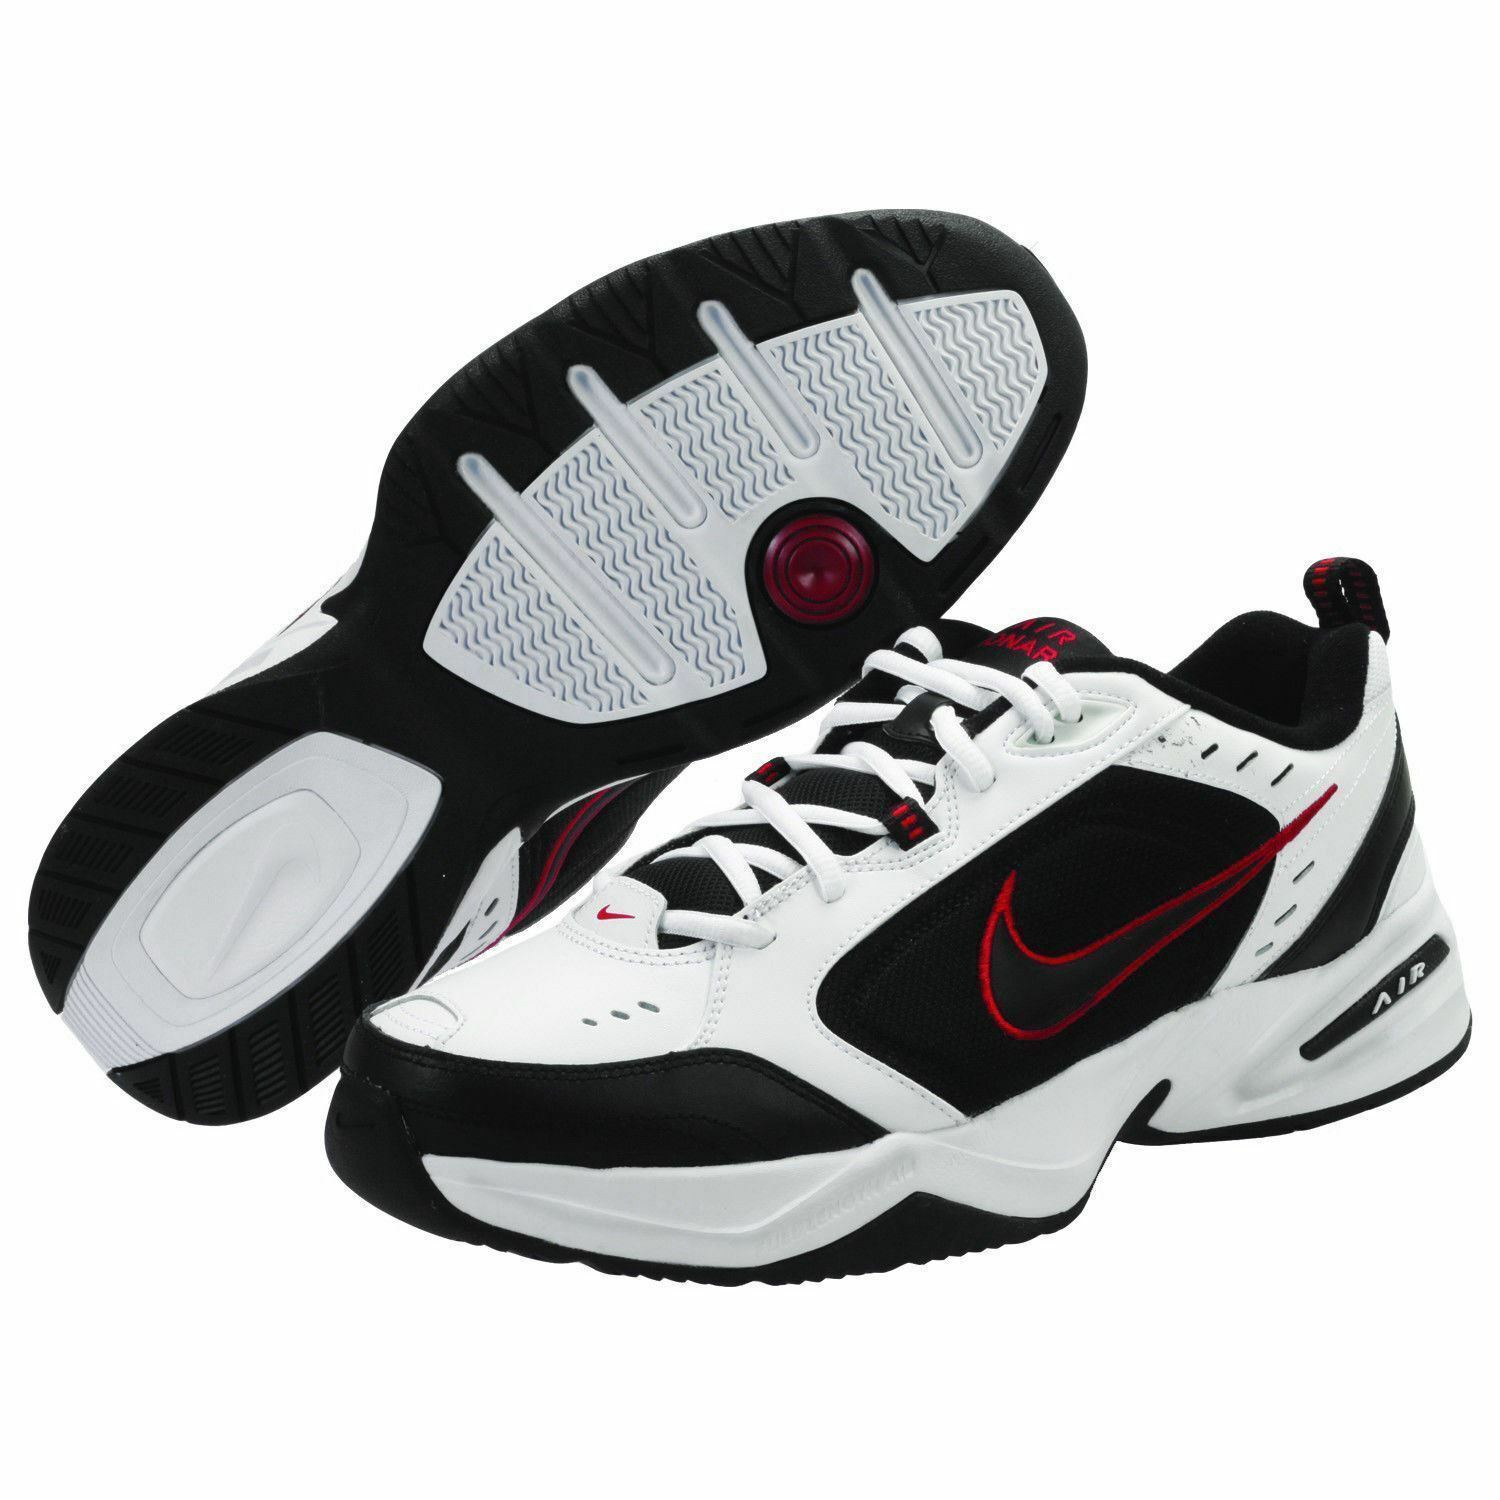 Nike Air Monarch IV Price reduction White/Black 416355 101 Men's Shoes